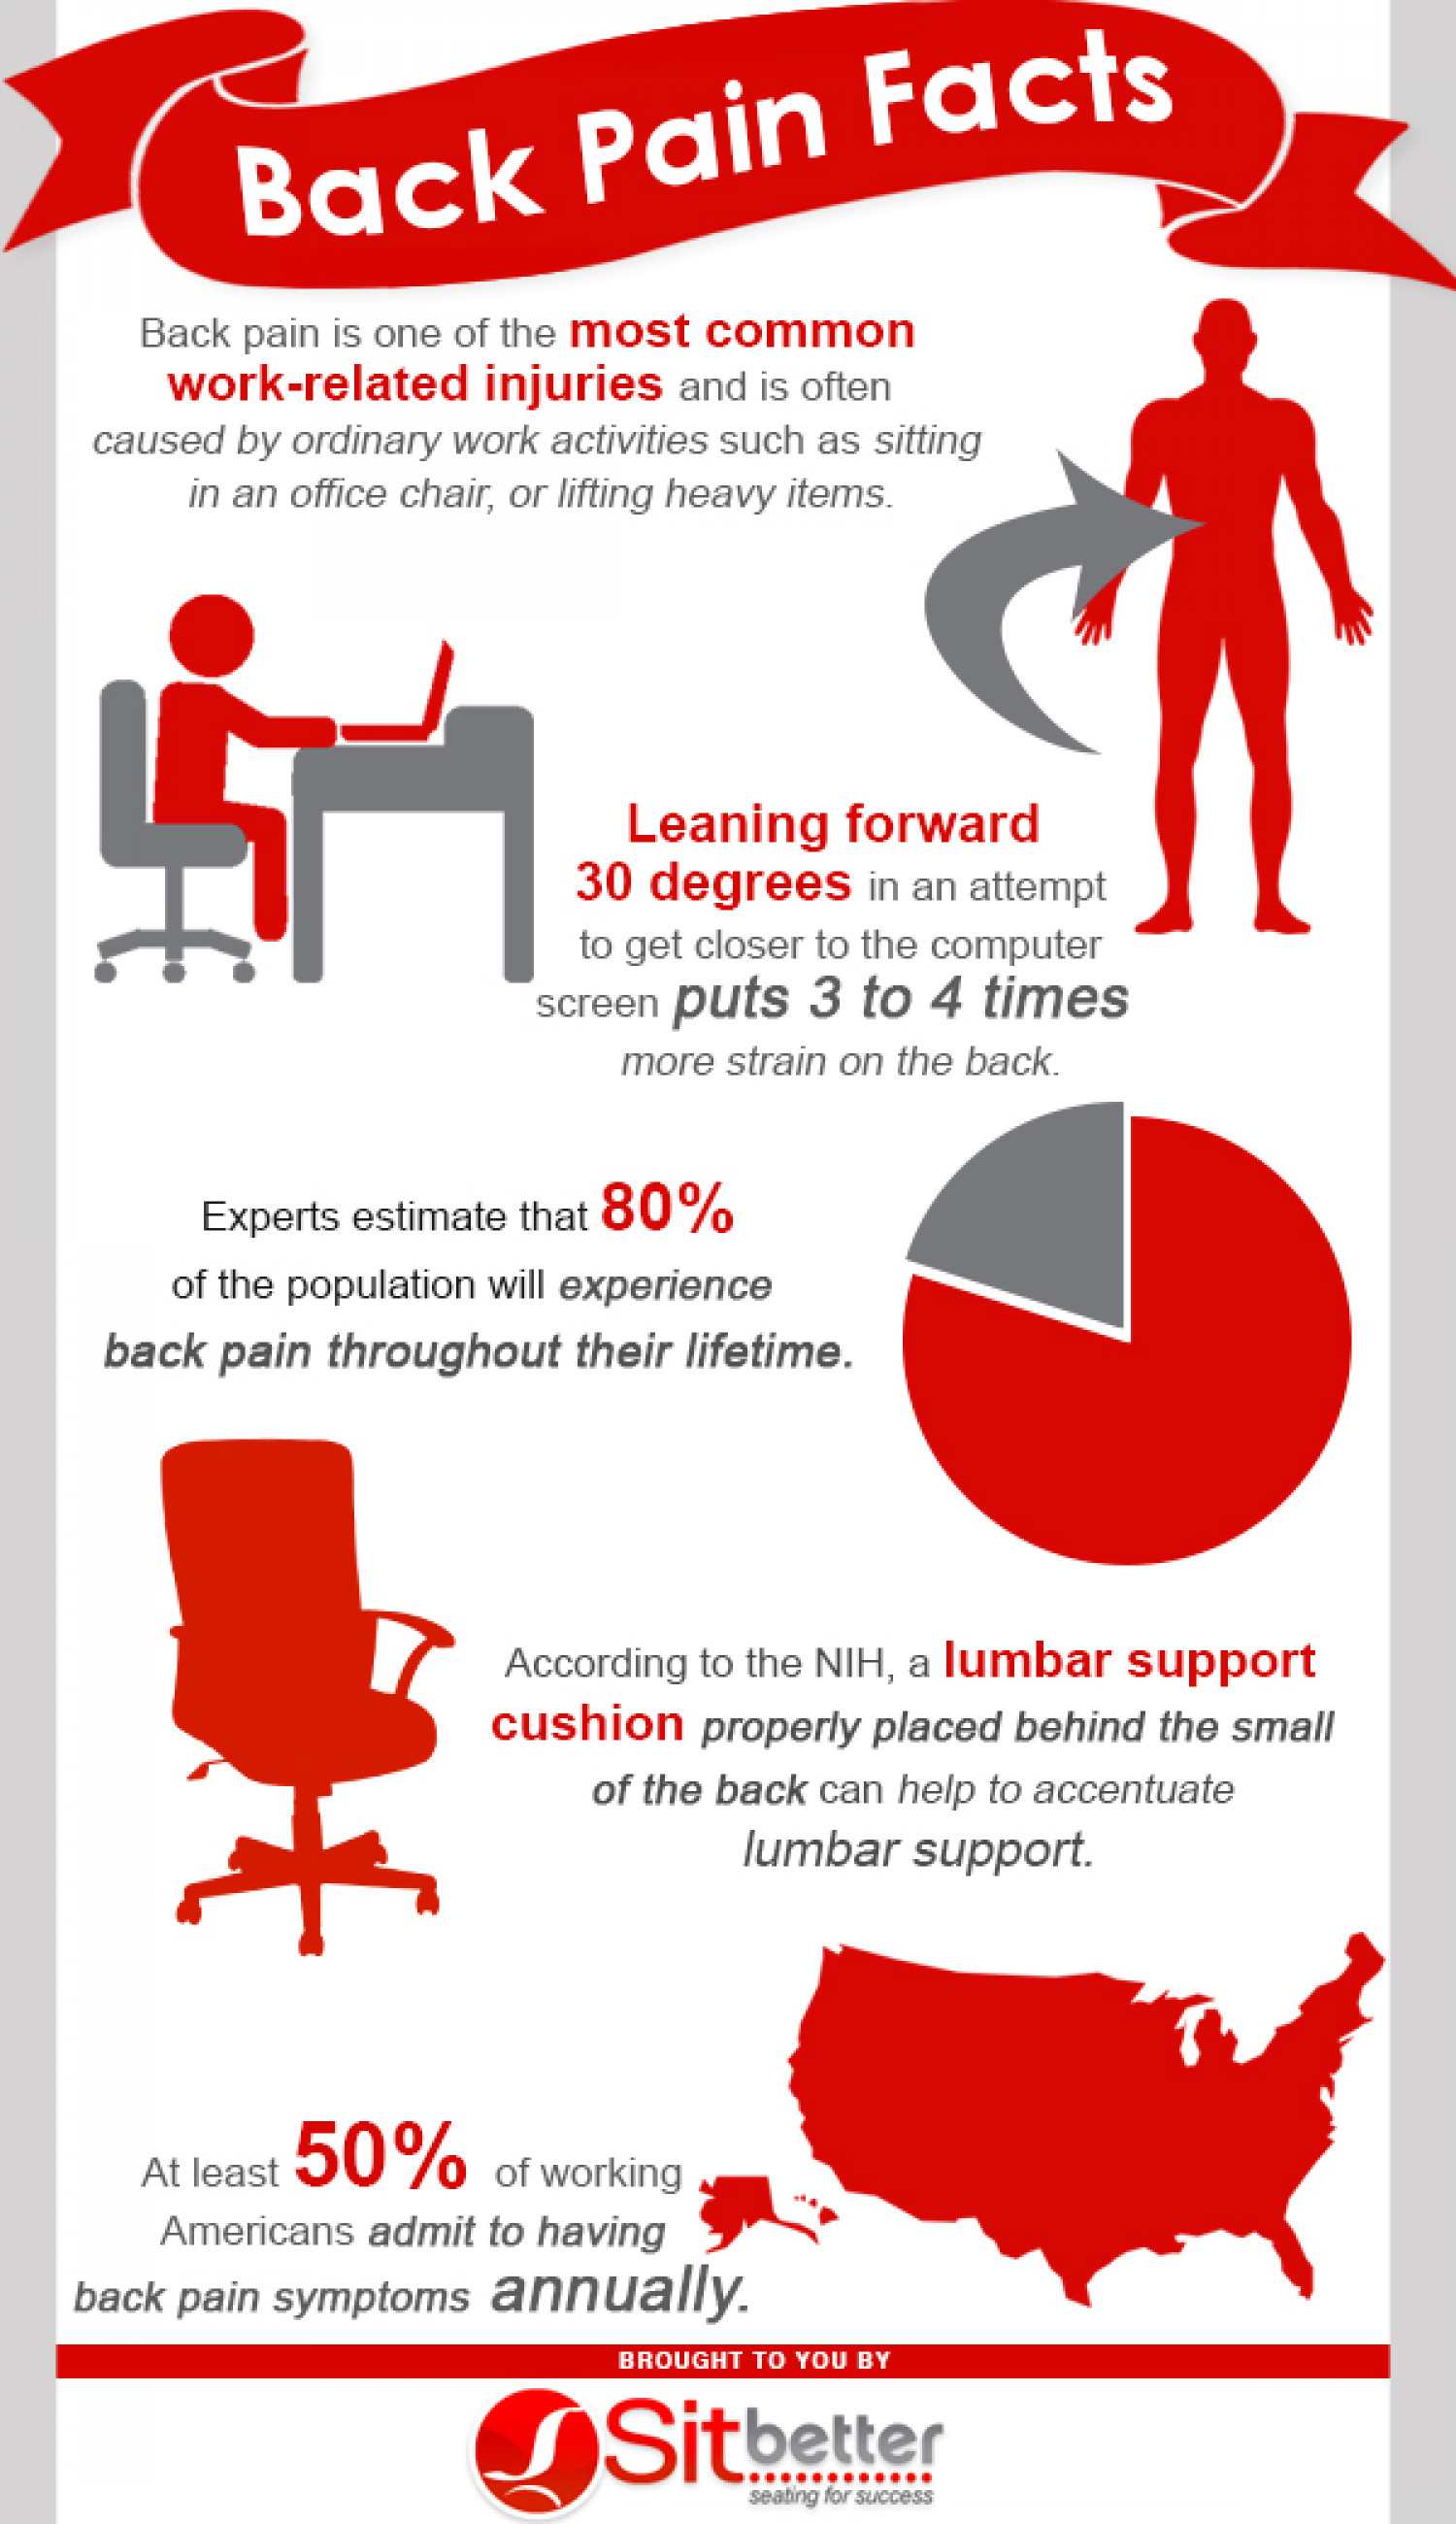 Back Pain Facts Infographic